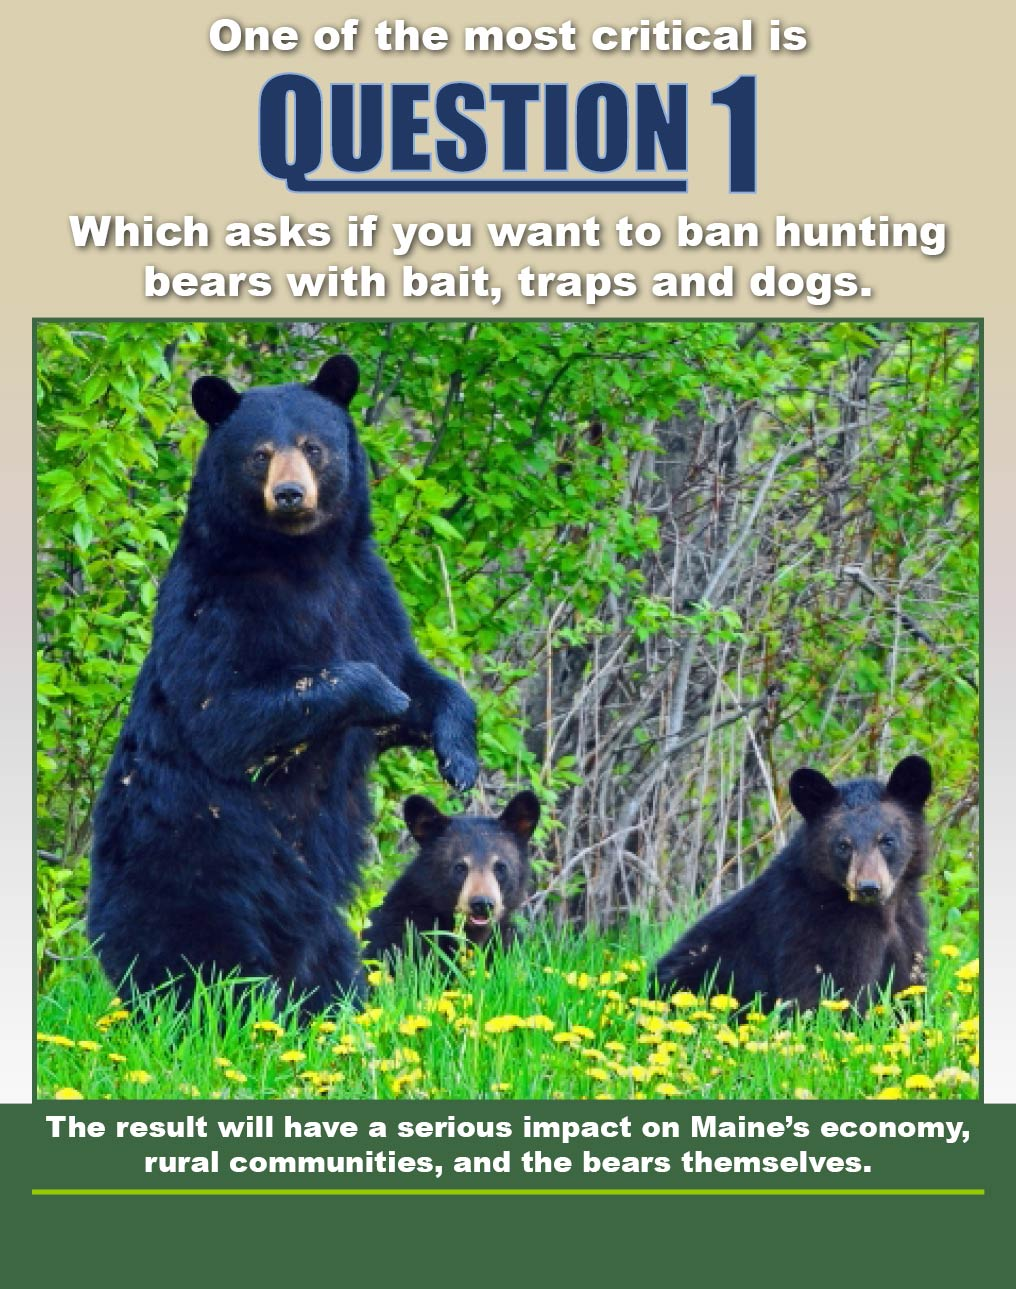 One of the most critical is Question 1 which asks if you want to ban hunting bears with bait, traps, and dogs.  The result will have a serious impact on Maines economy, rural communities, and the bears themselves.